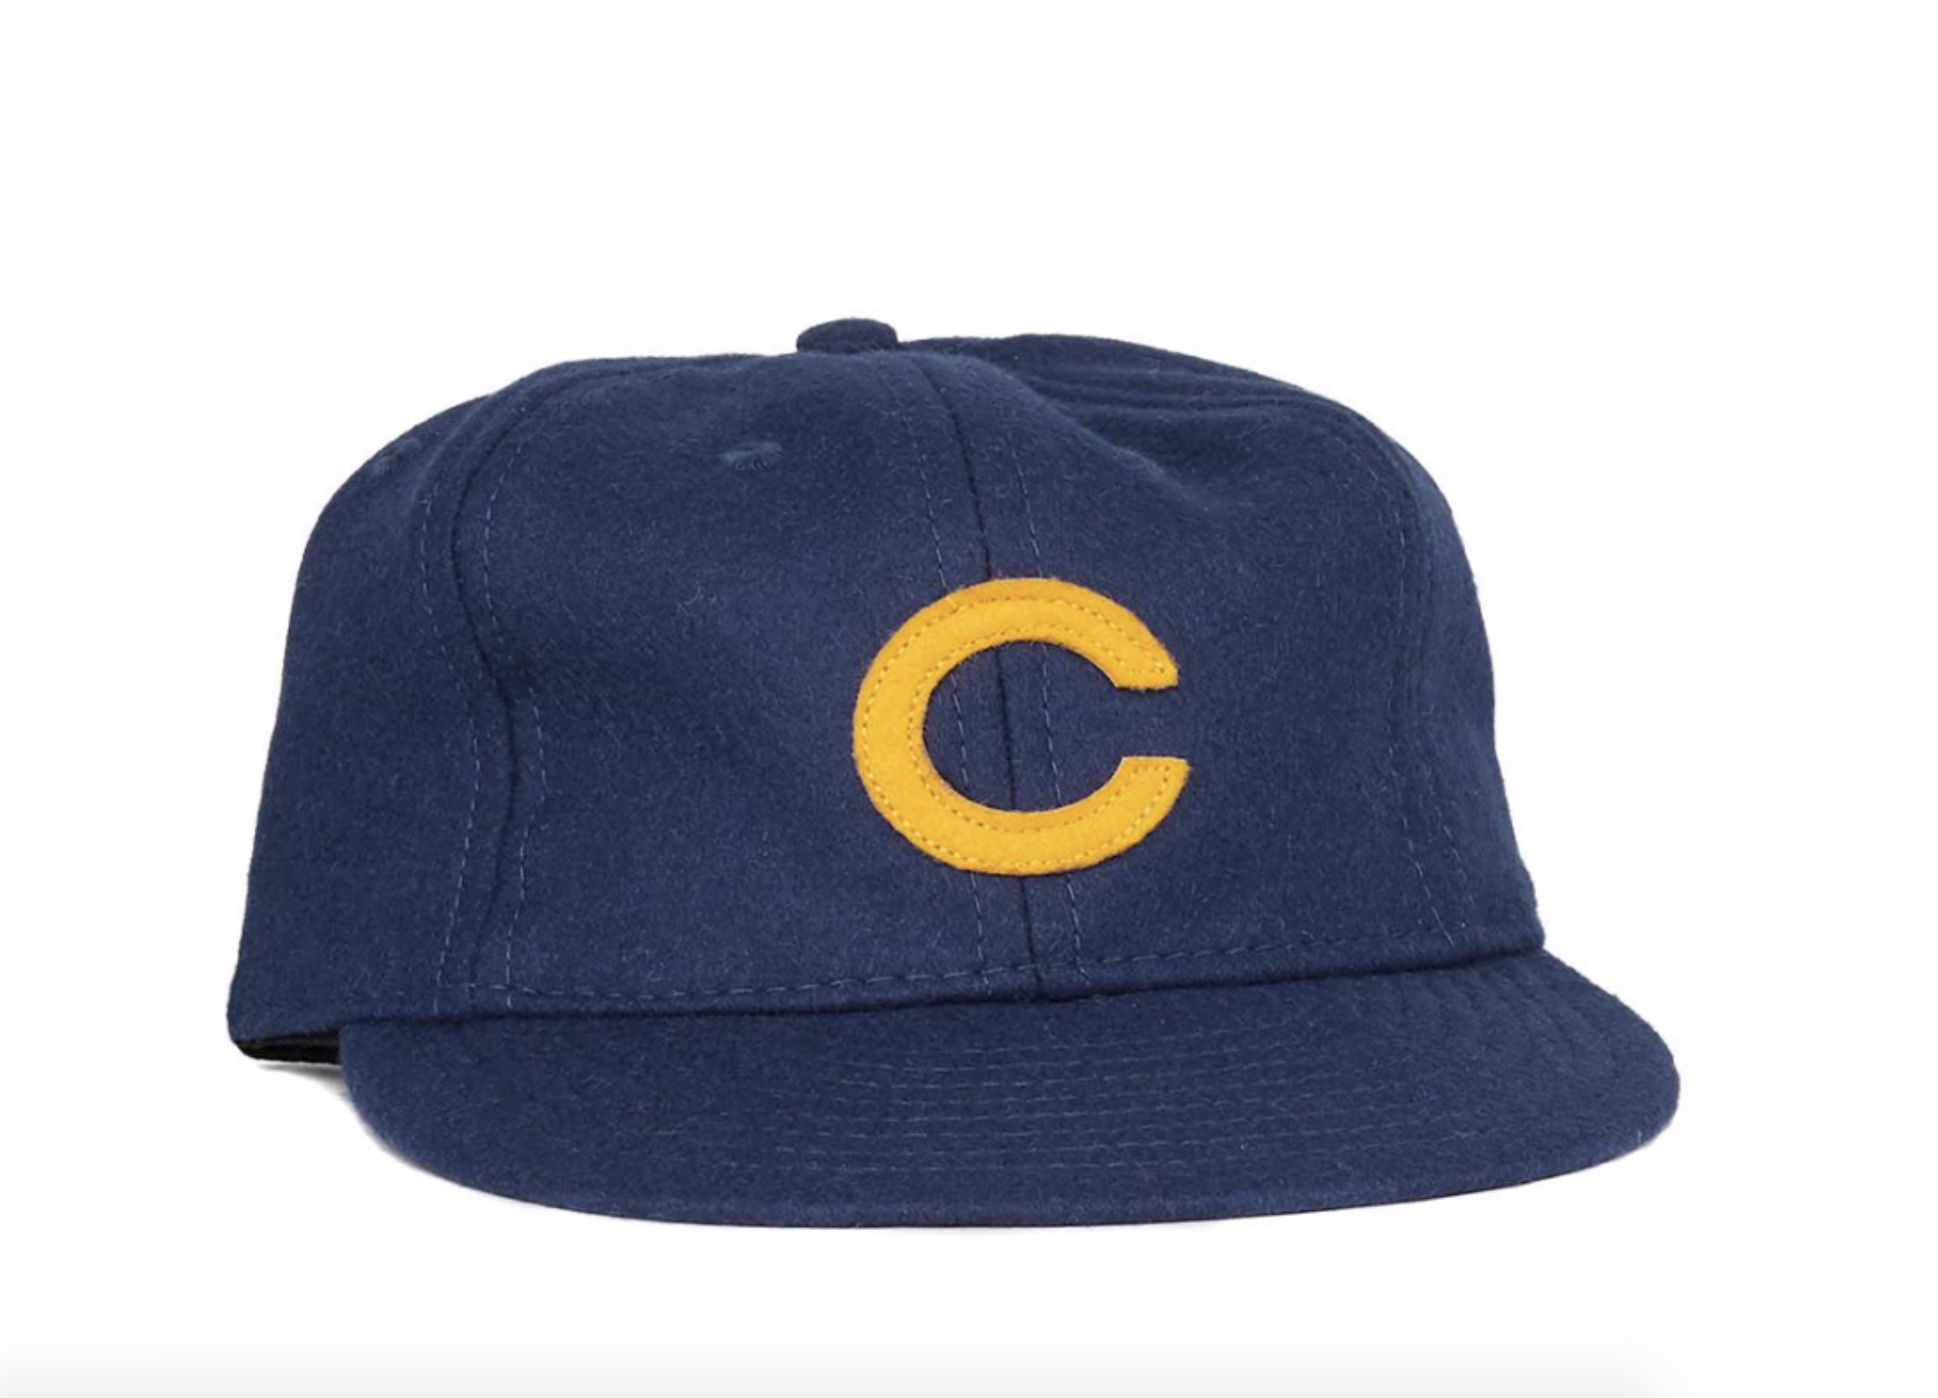 Ebbets ball caps